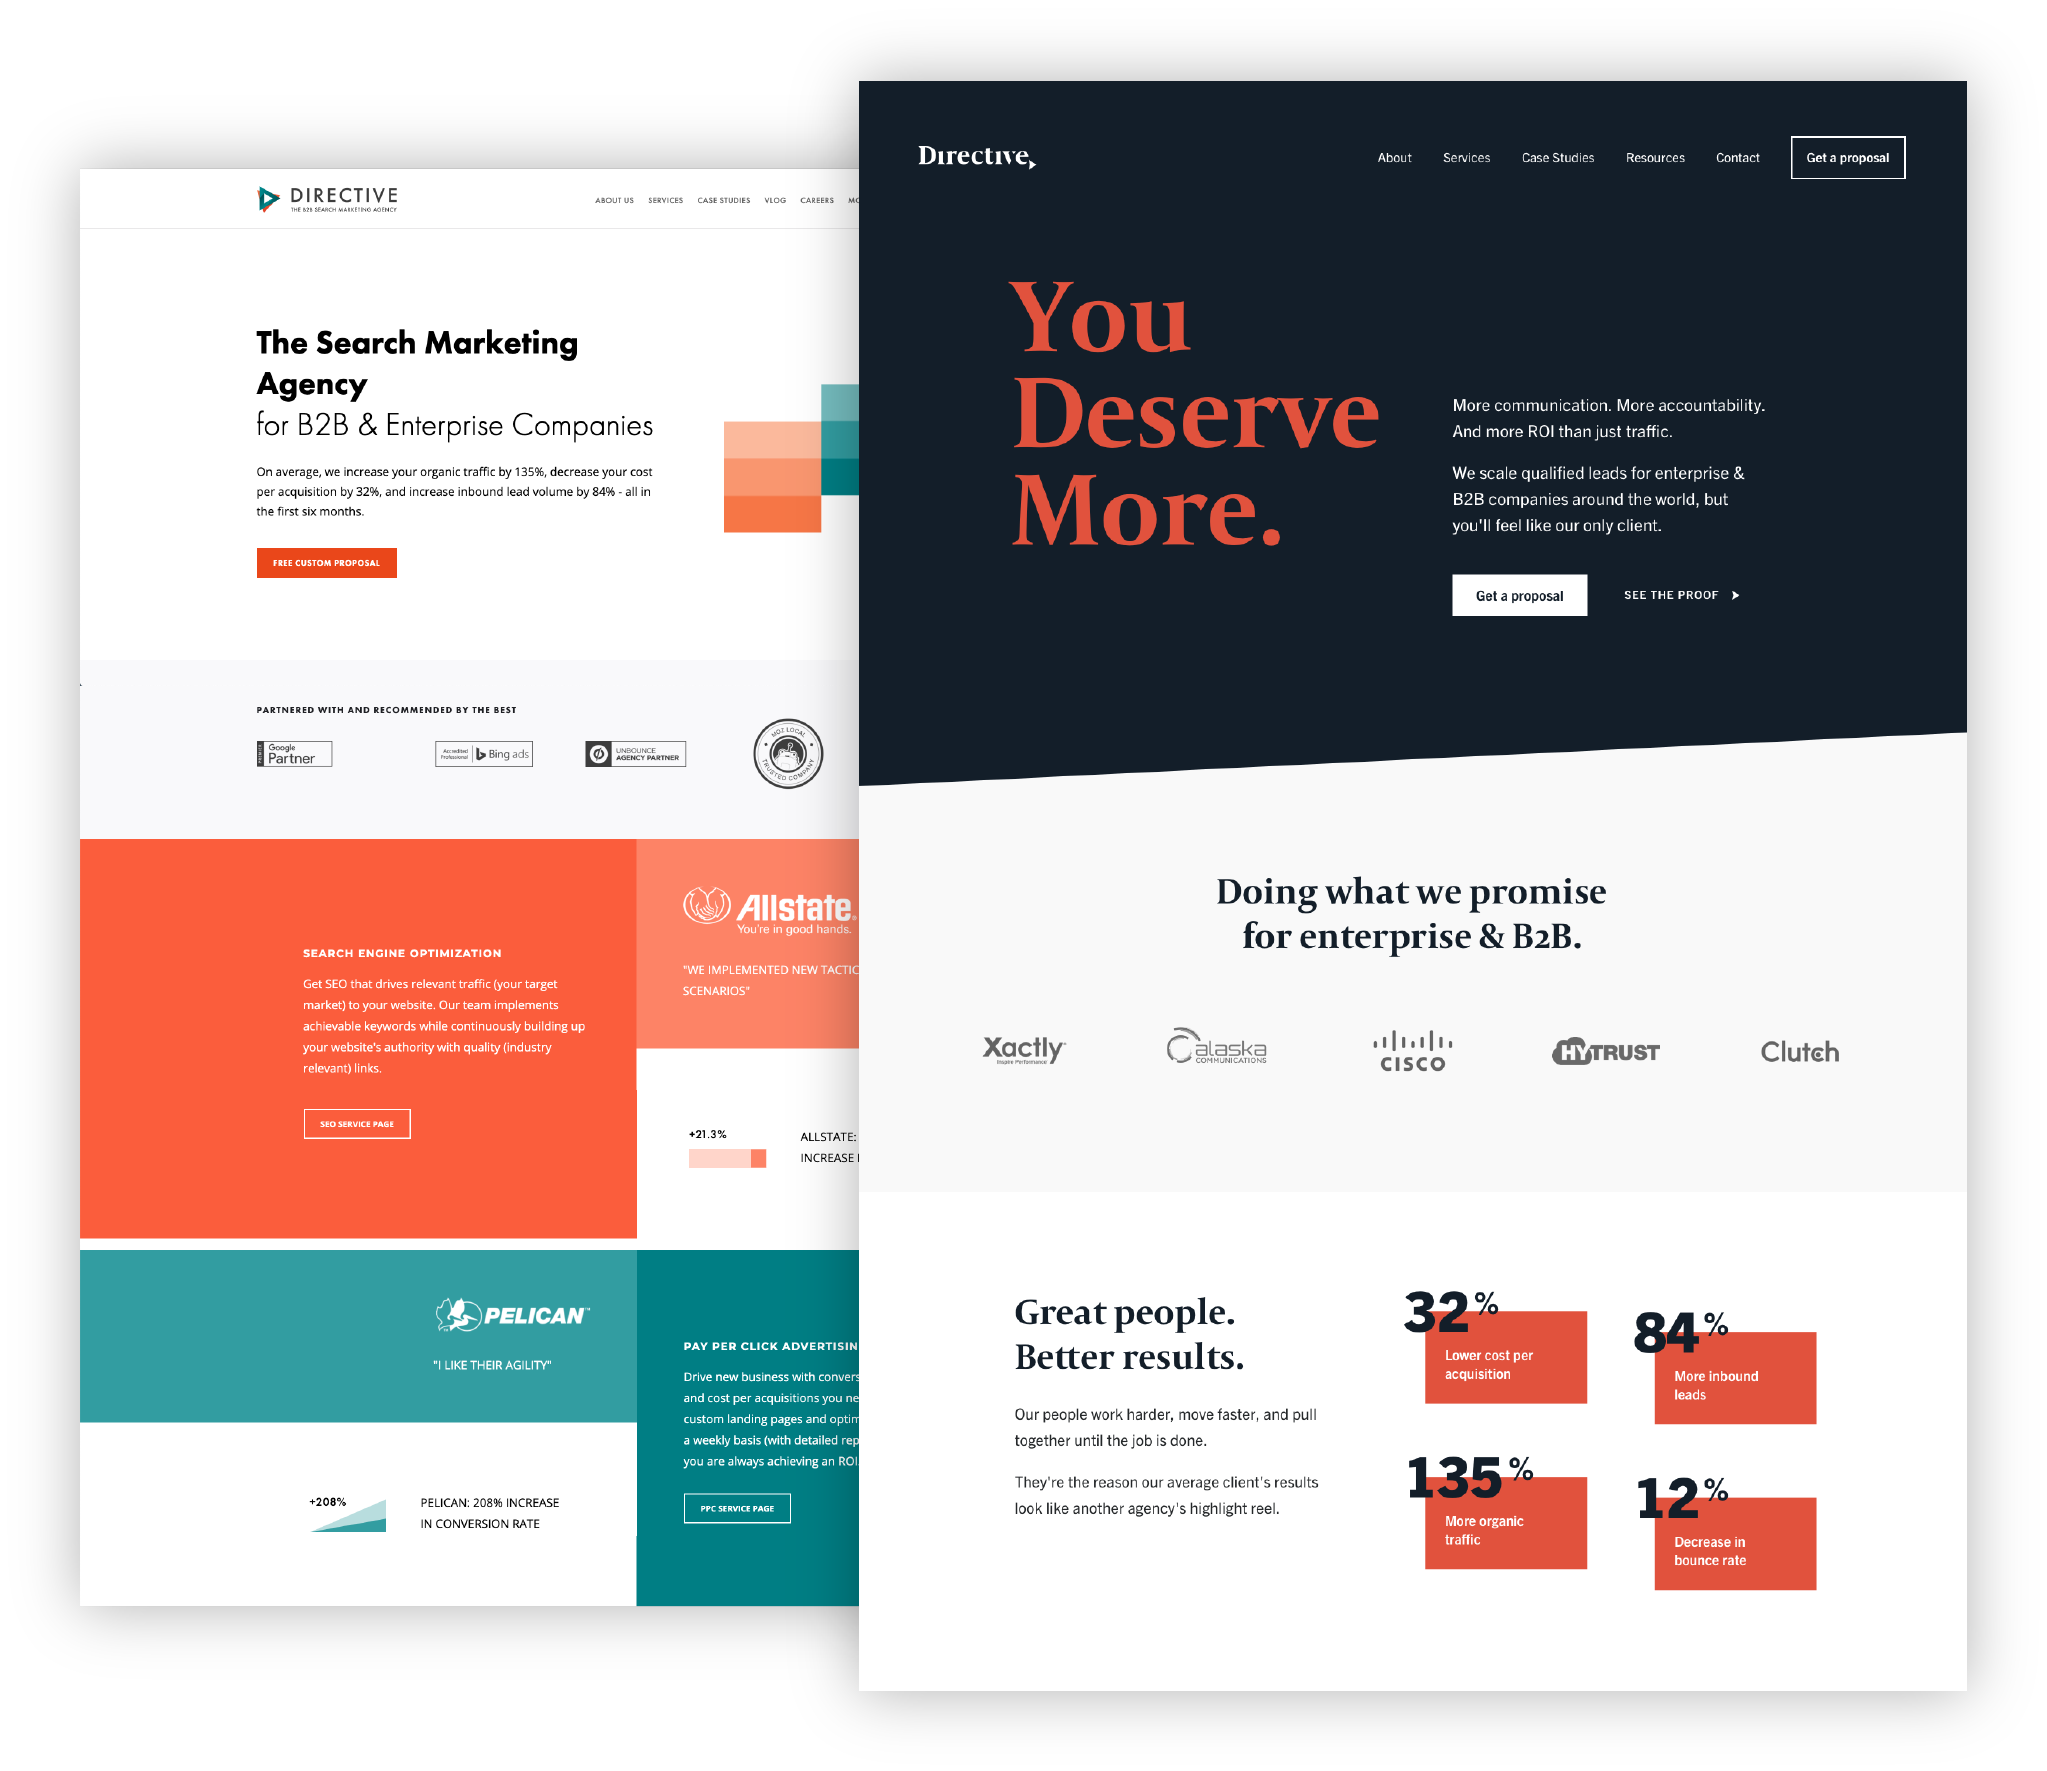 Directive Consulting website before and after rebranding